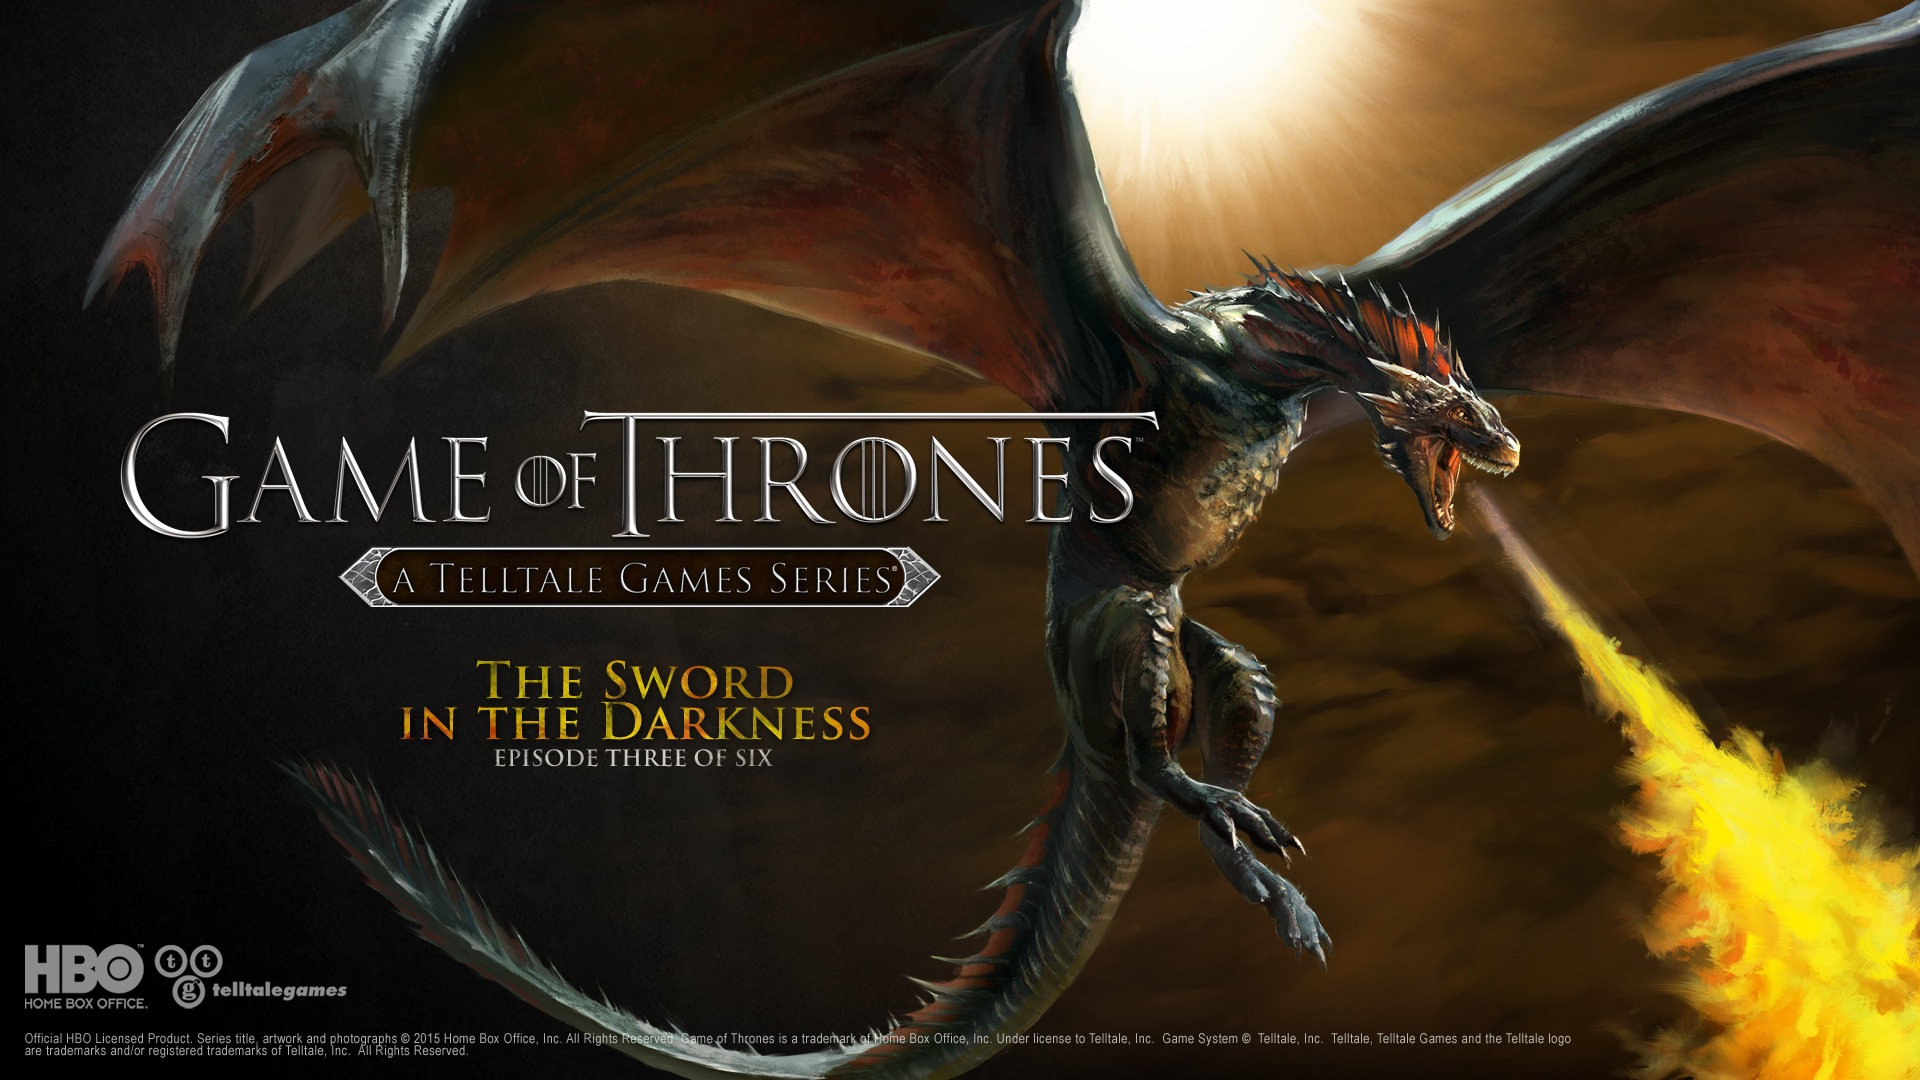 Game of Thrones: Episode 3 - The Sword in the Darkness